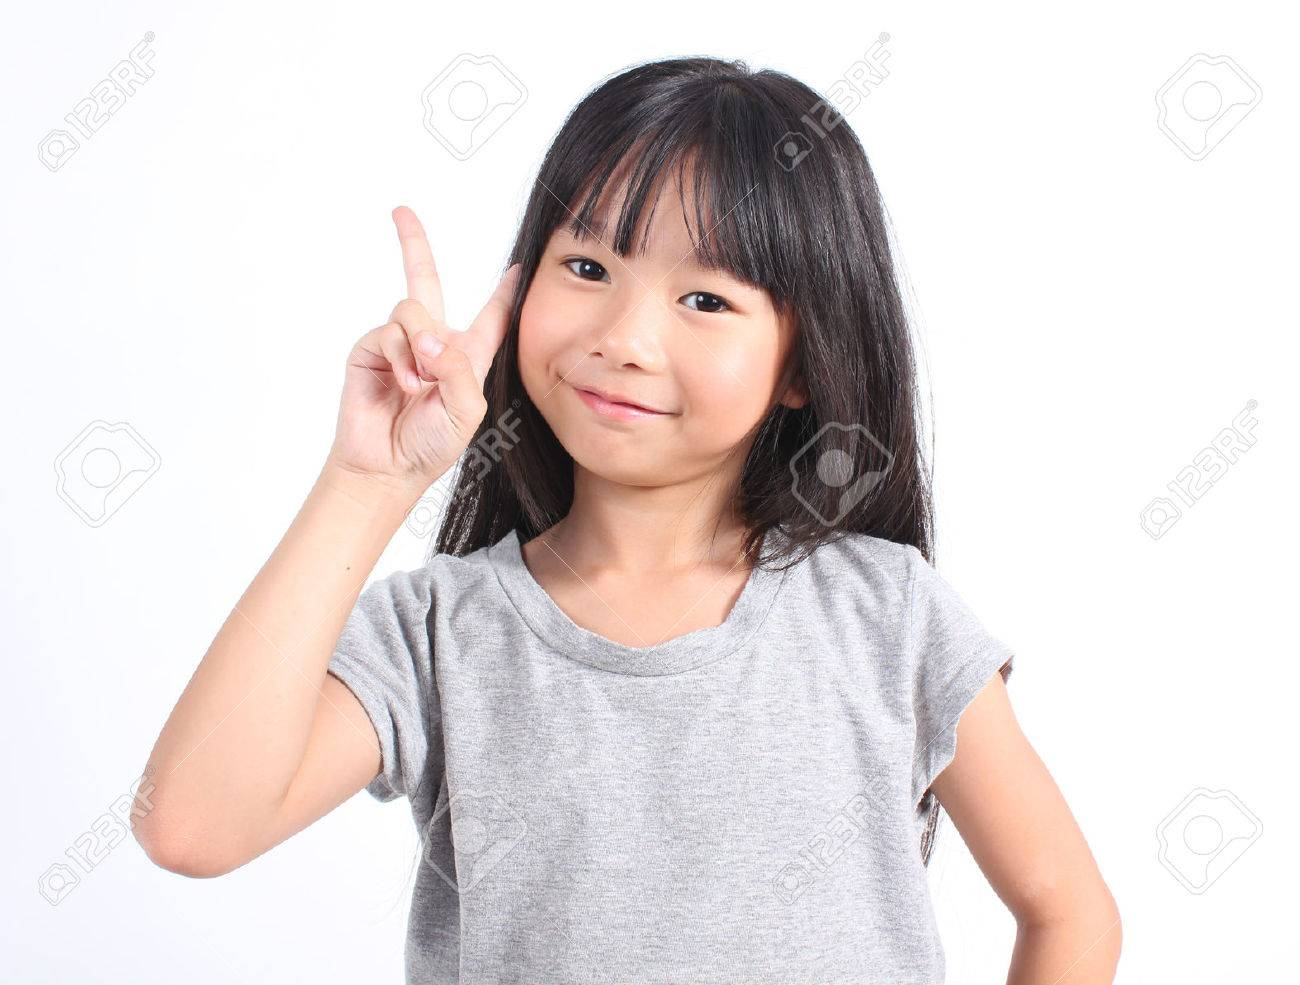 Portrait of young cute girl - 43865431